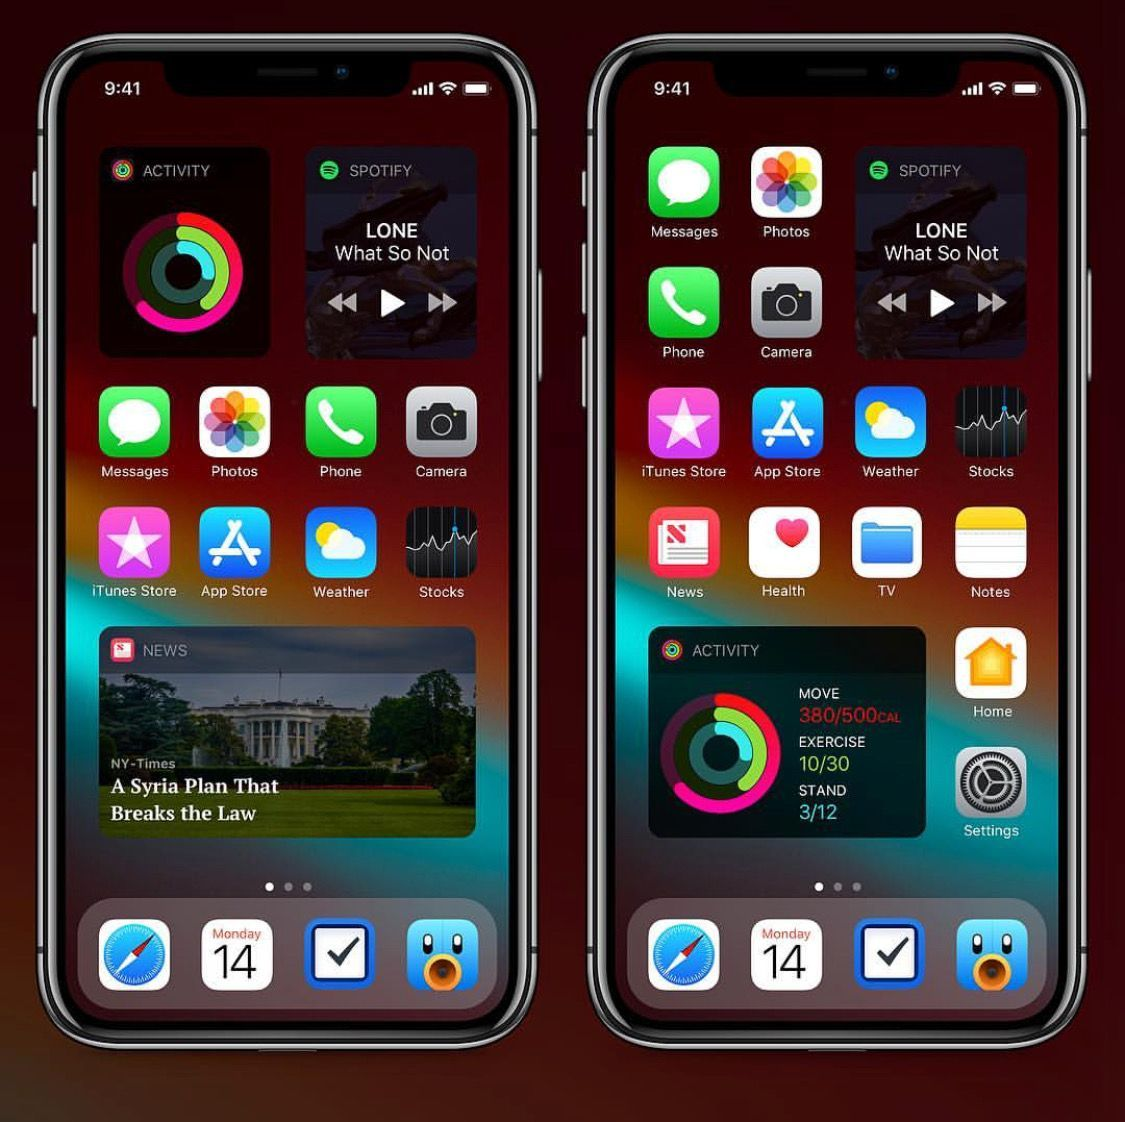 Pin by Jas on iPhone in 2020 Apple products, Homescreen